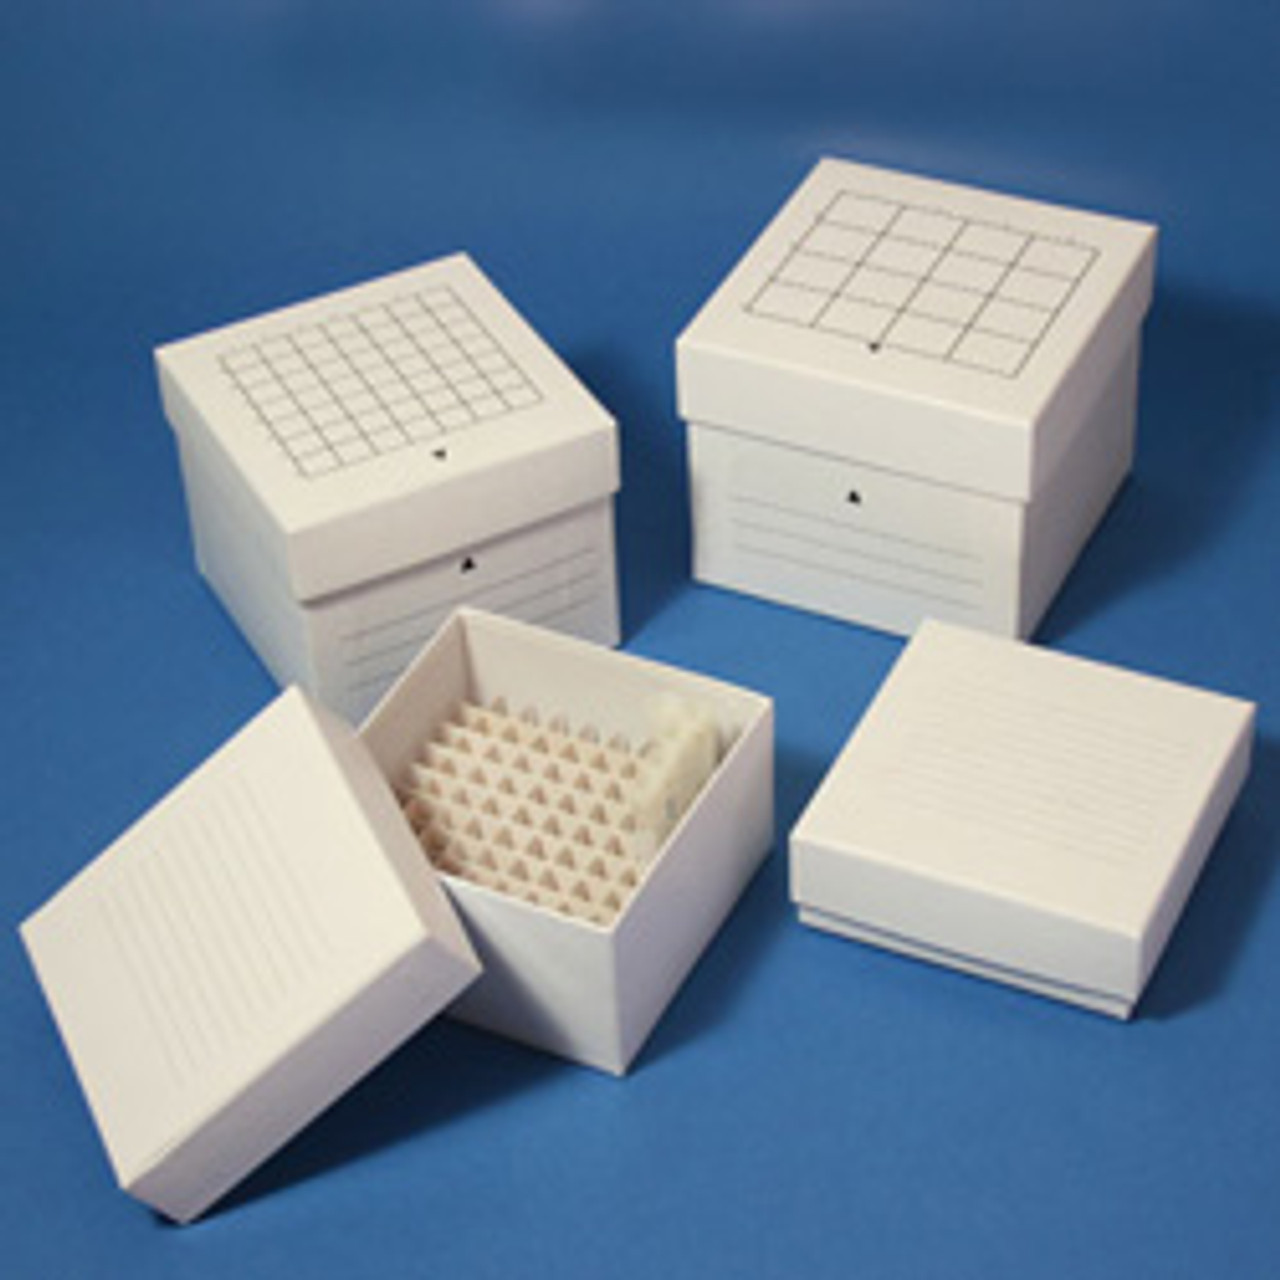 Standard 6 x 6 Size Crystal Technology SB3C-36 White Cardboard #36 Freezer Boxes 3 with Divider